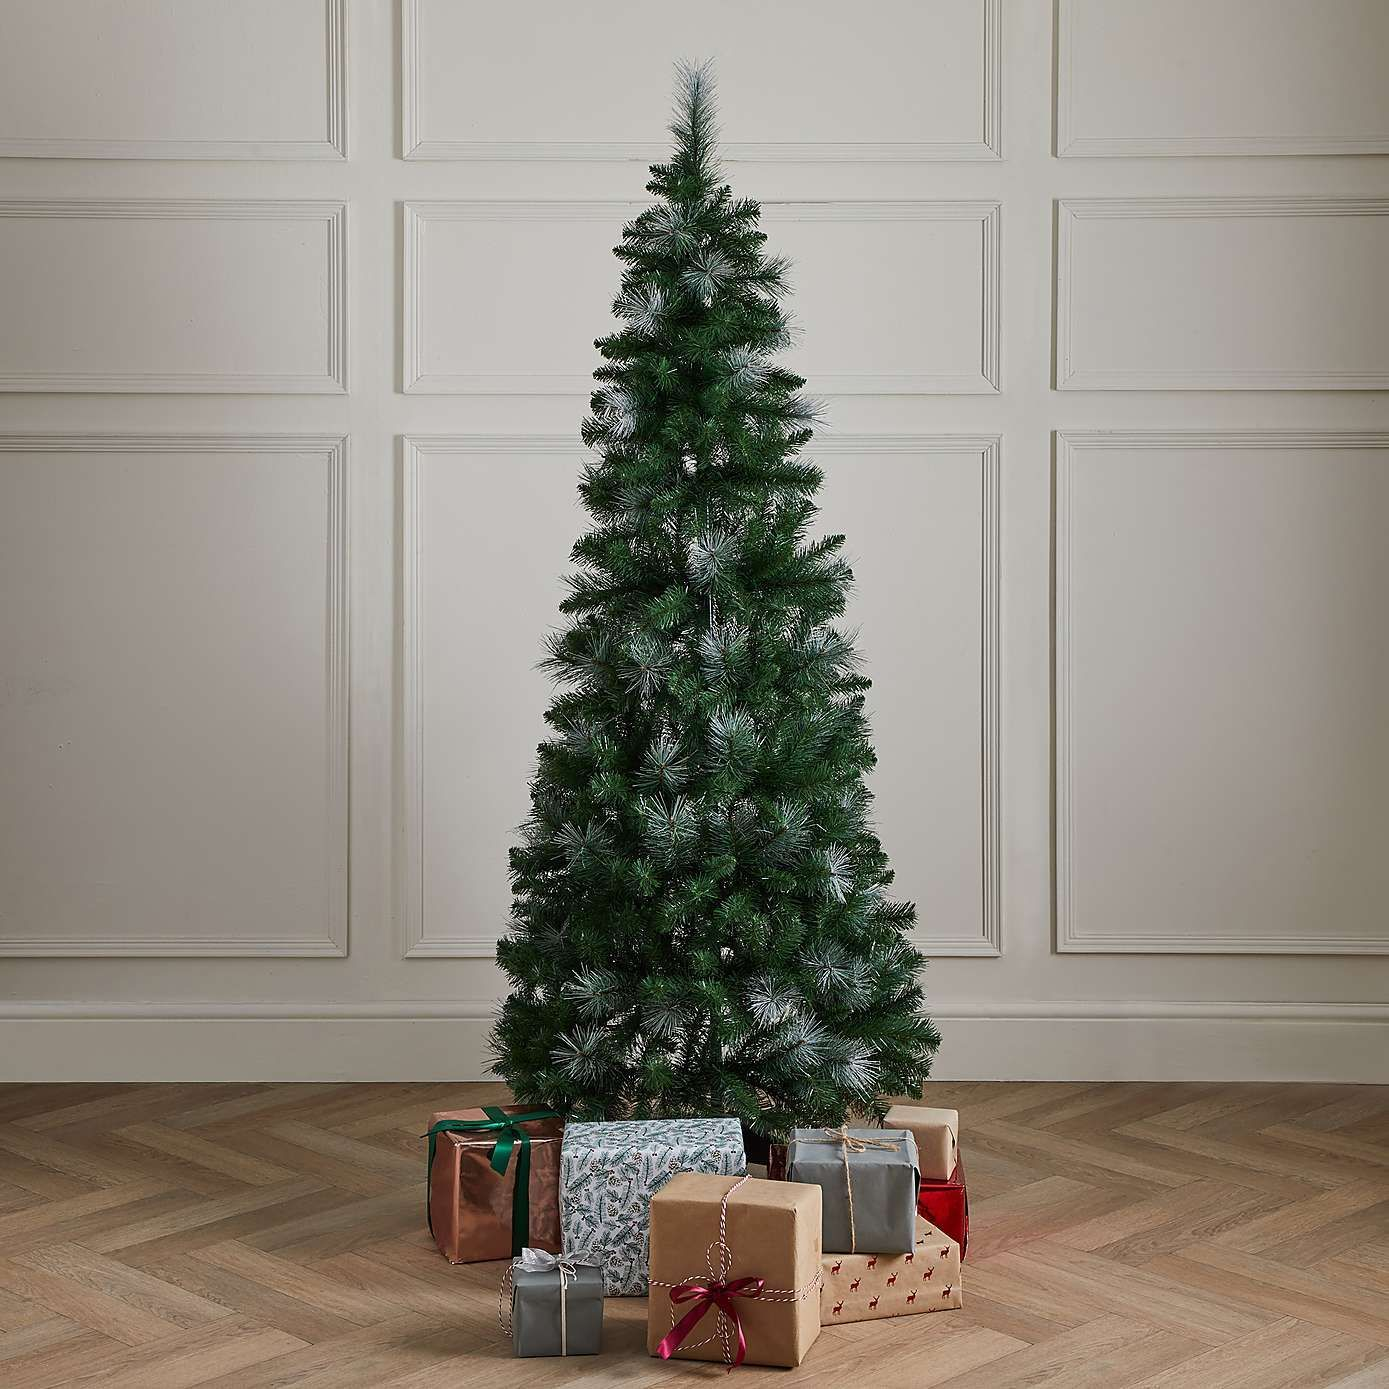 Would You Buy A Pop Up Christmas Tree Christmas Tree Jeweled Christmas Trees Pine Christmas Tree